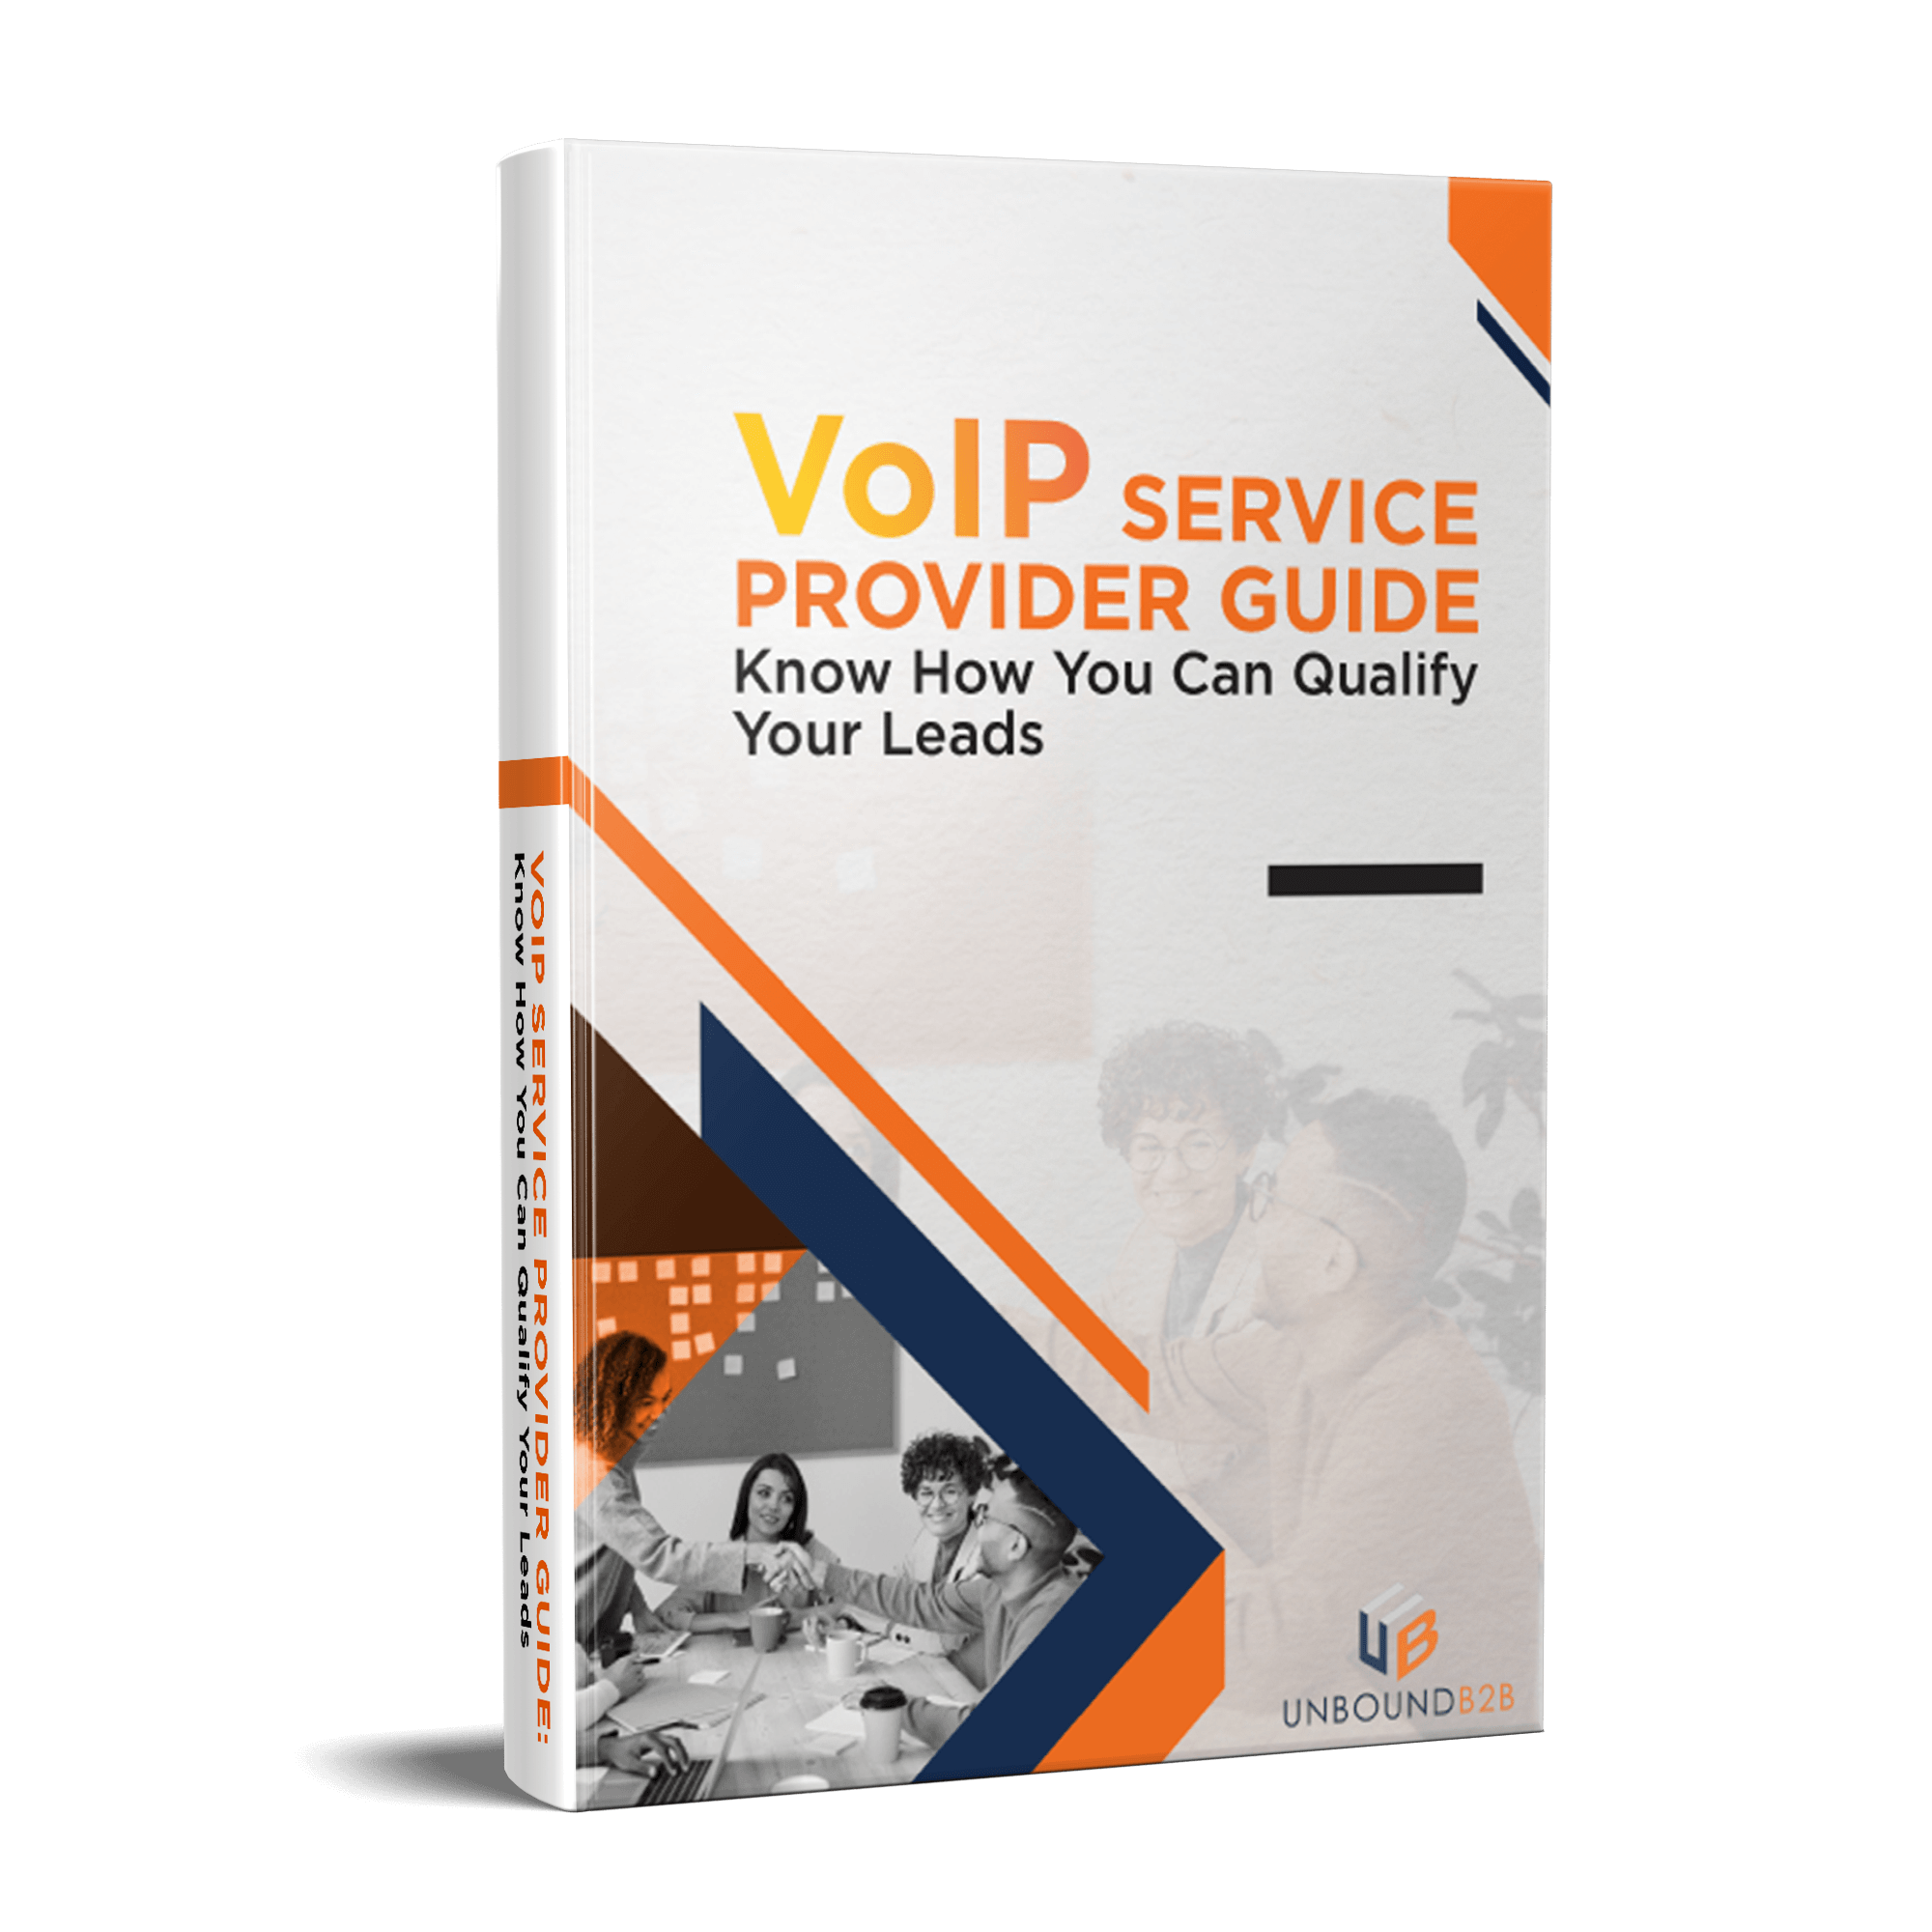 VoIP Service Provider Guide